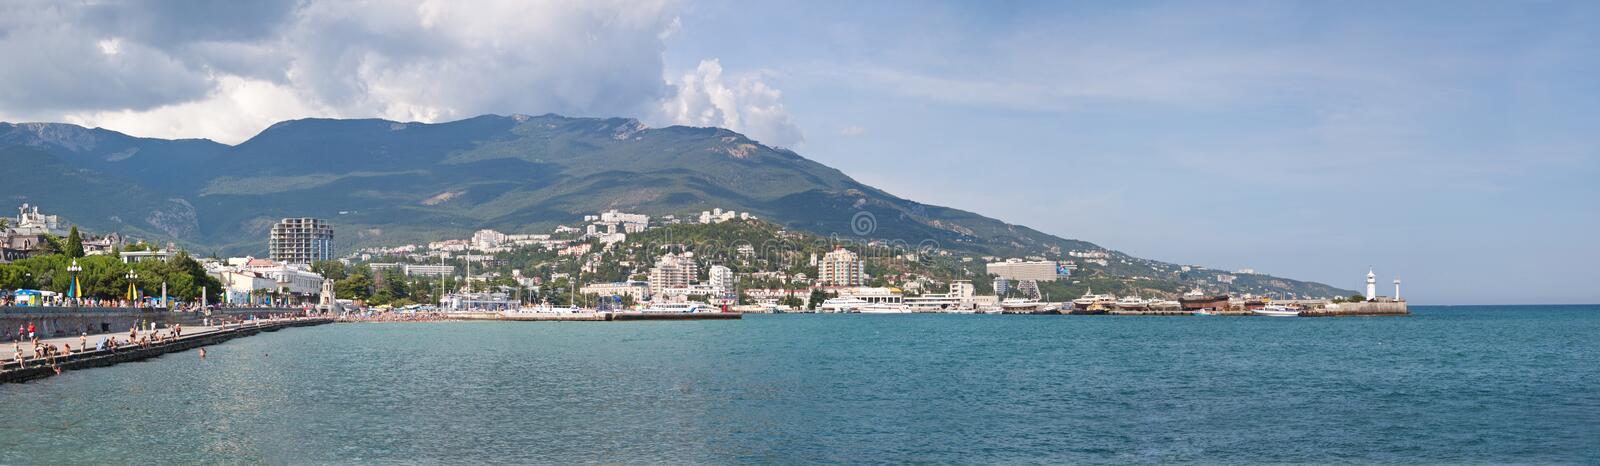 Download Summer View Seacoast. The Crimea, Ukraine Royalty Free Stock Photo - Image: 24983645